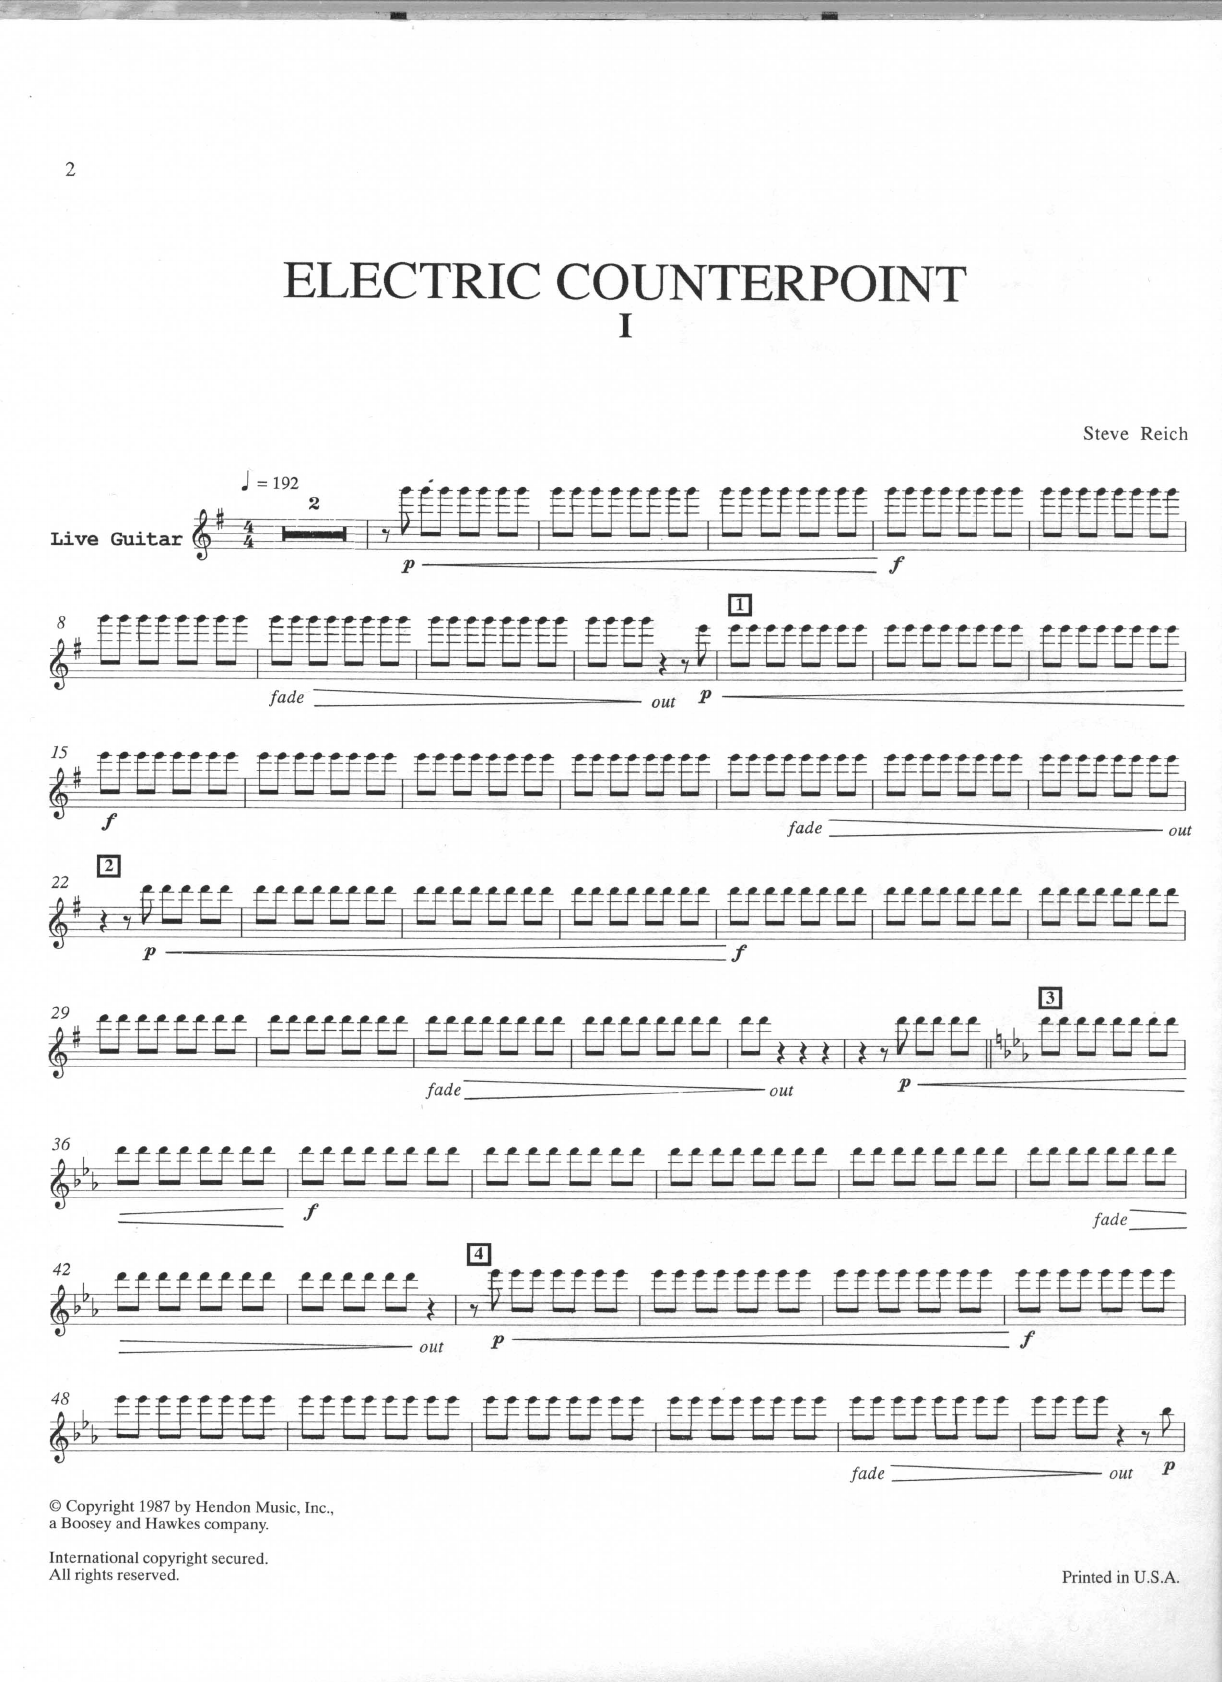 score and part sheet music; Reich Electric Counterpoint score /& part Steve